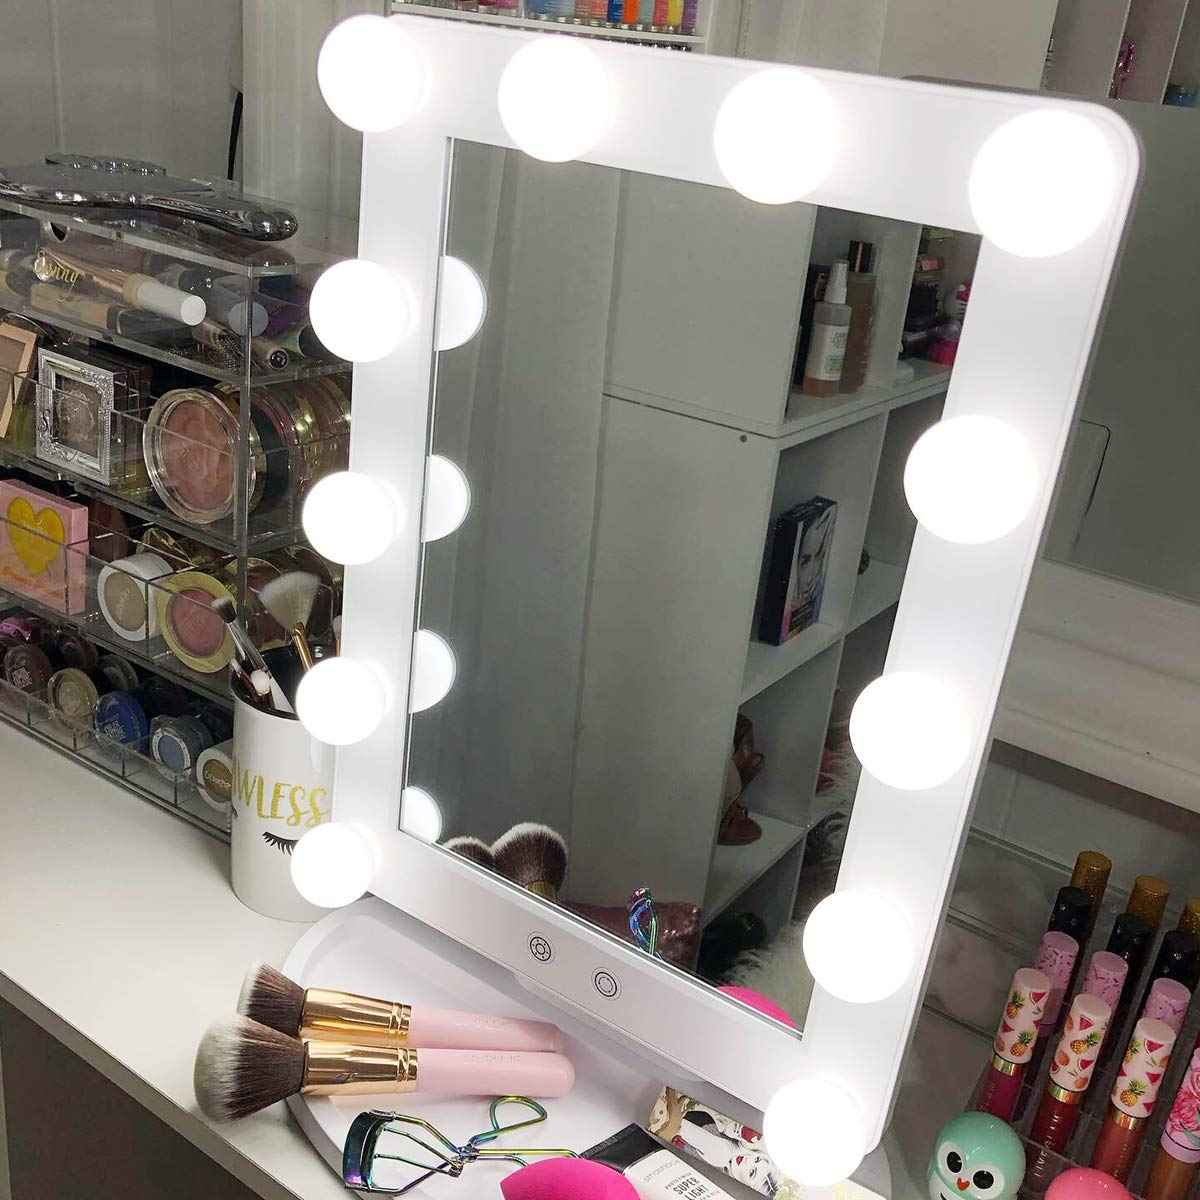 Hollywood Vanity Mirror With Lights 3 Color Lighting Modes Lighted Makeup Mirror Touch Control 12 LED Bulbs Dimmable Large Desk Mirror, 25 Tilt Free Standing Tabletop Light up Beauty Mirrors White